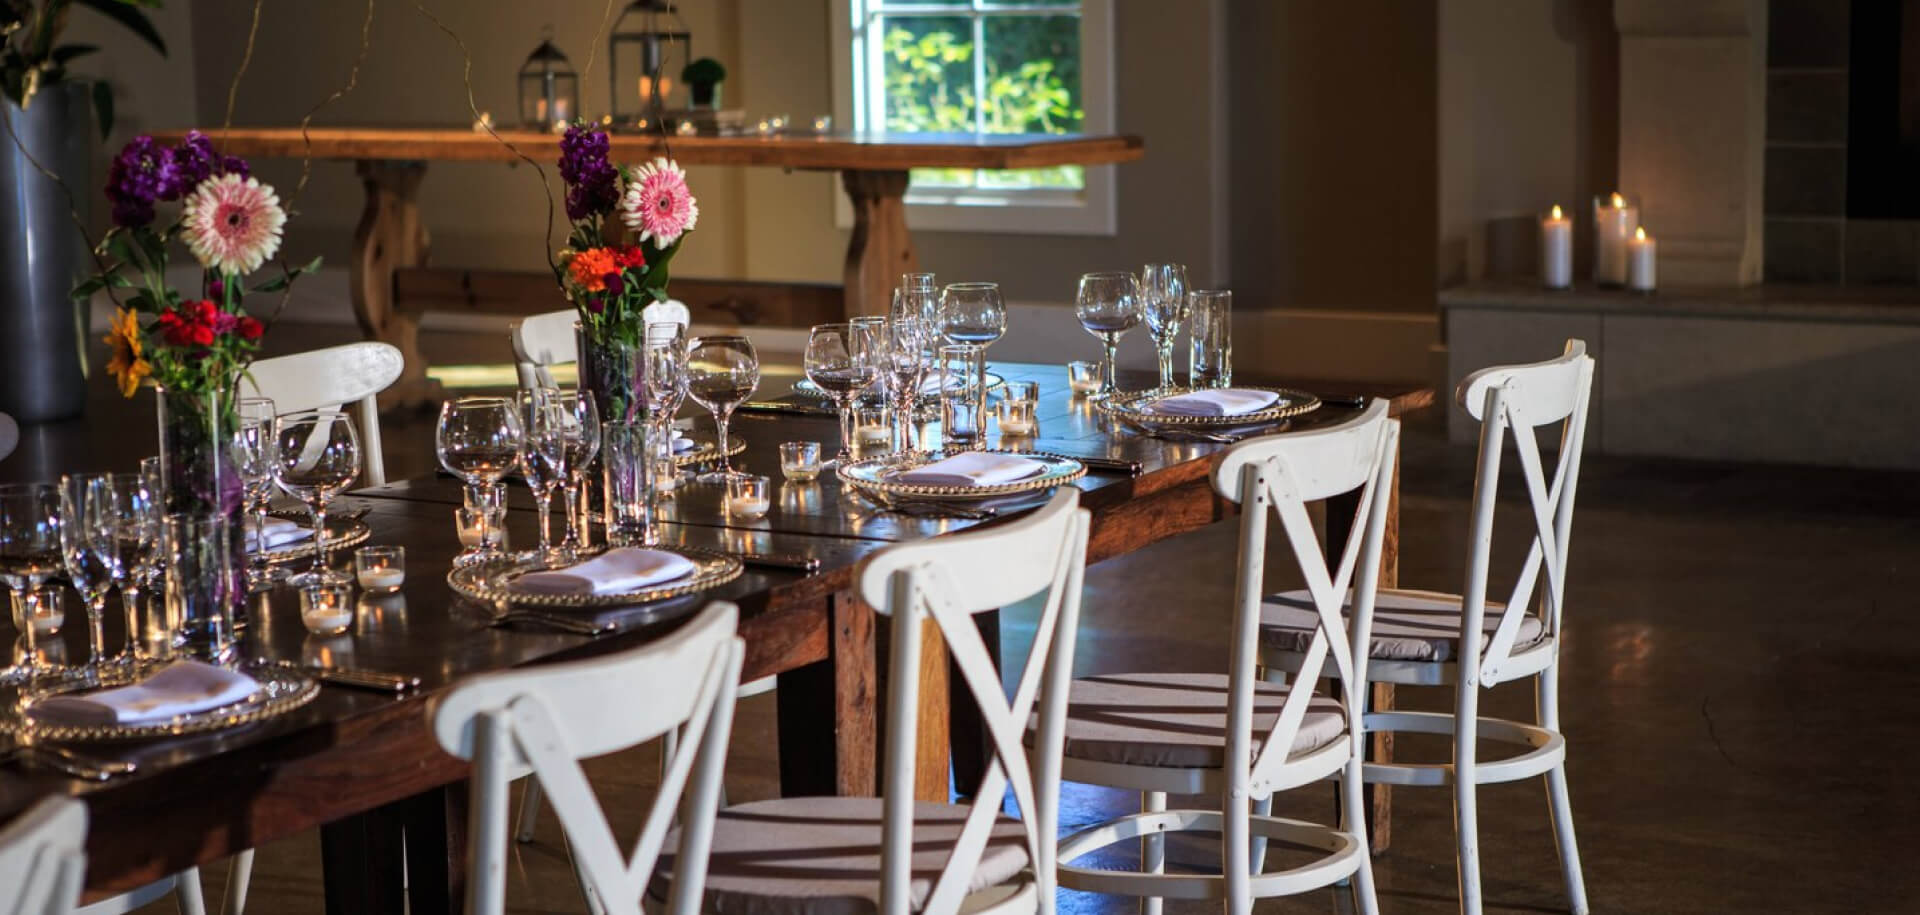 A long dark wood table set with flowers, cutlery and other tableware.